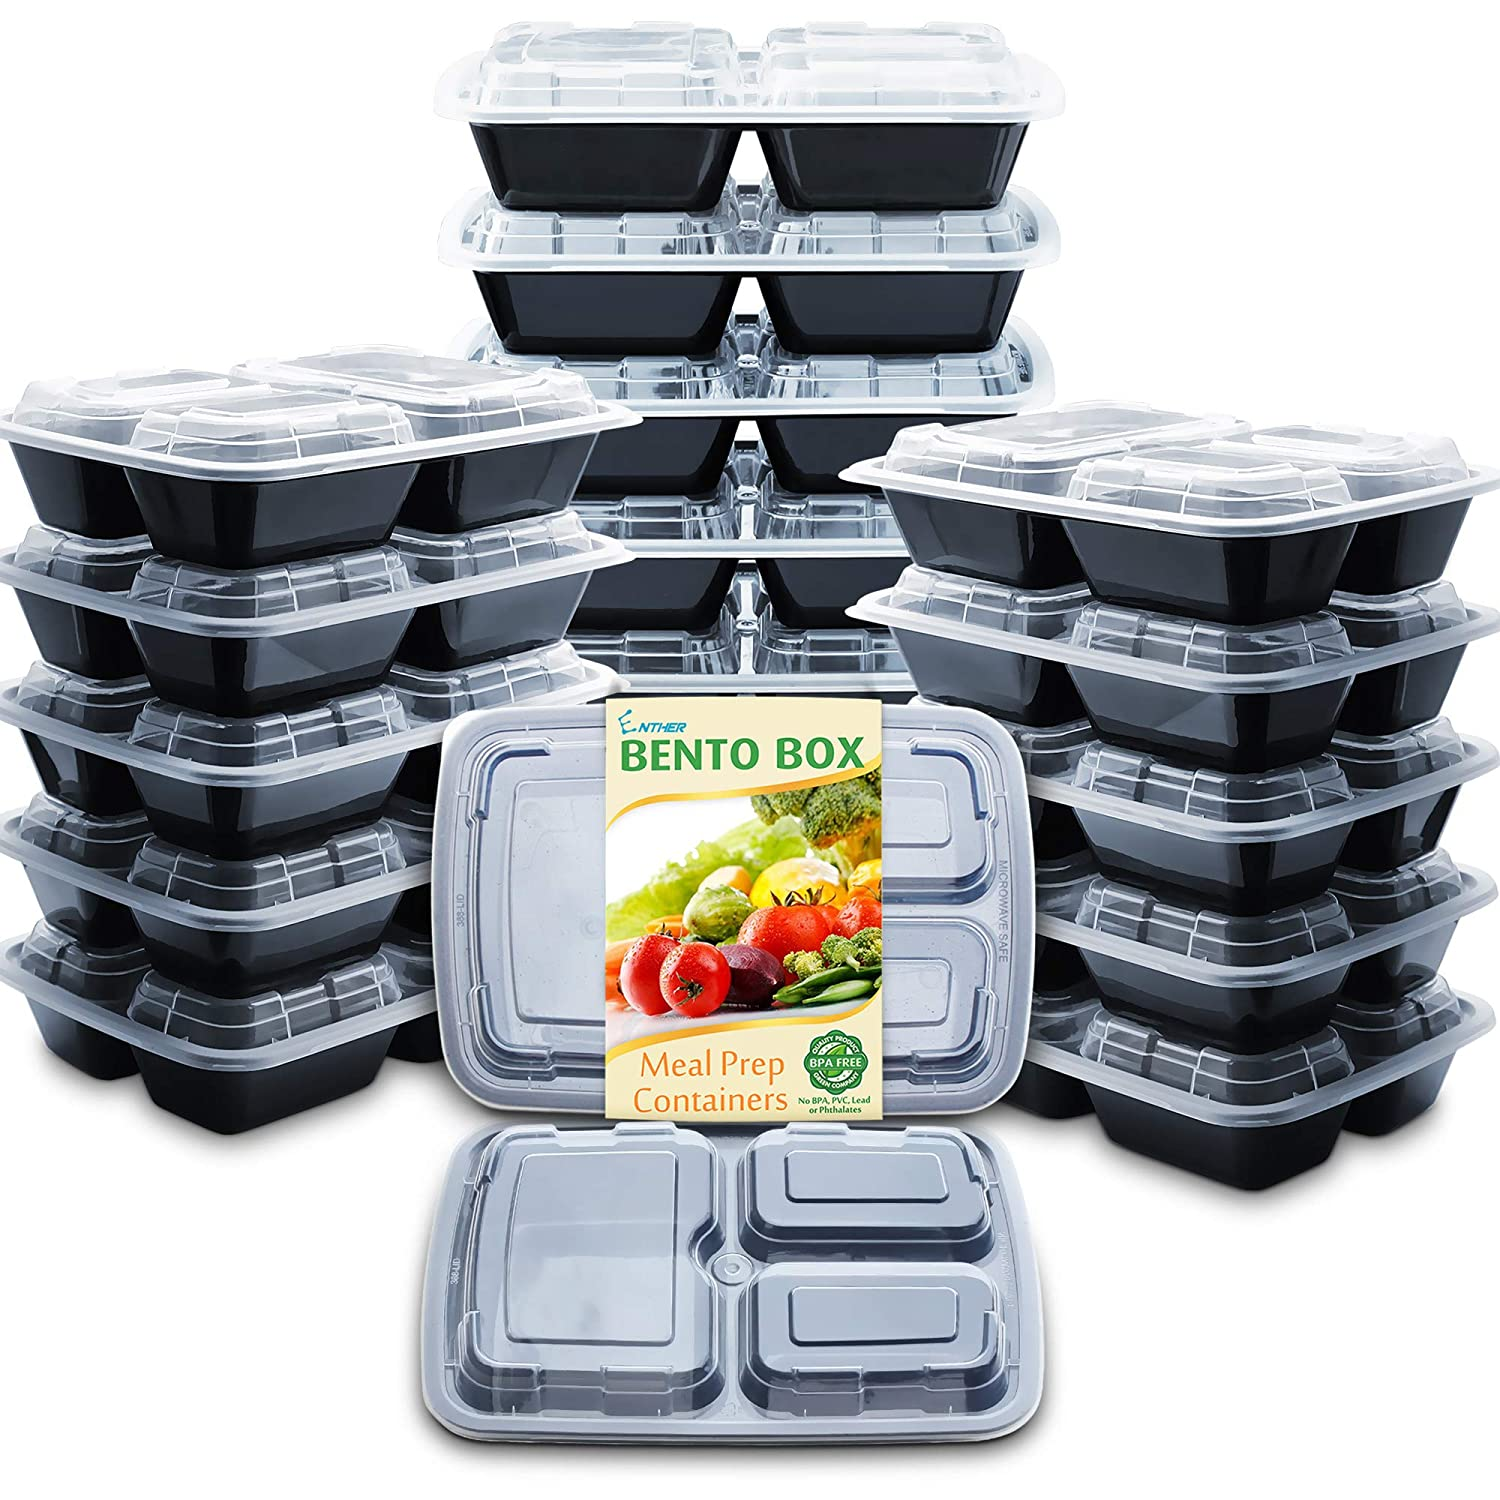 Enther 24oz Meal Prep Containers [20 Pack] 3 Compartment with Lids, Food Storage Bento Box, BPA Free, Reusable Lunch Box, Microwave/Dishwasher/Freezer Safe, Portion Control